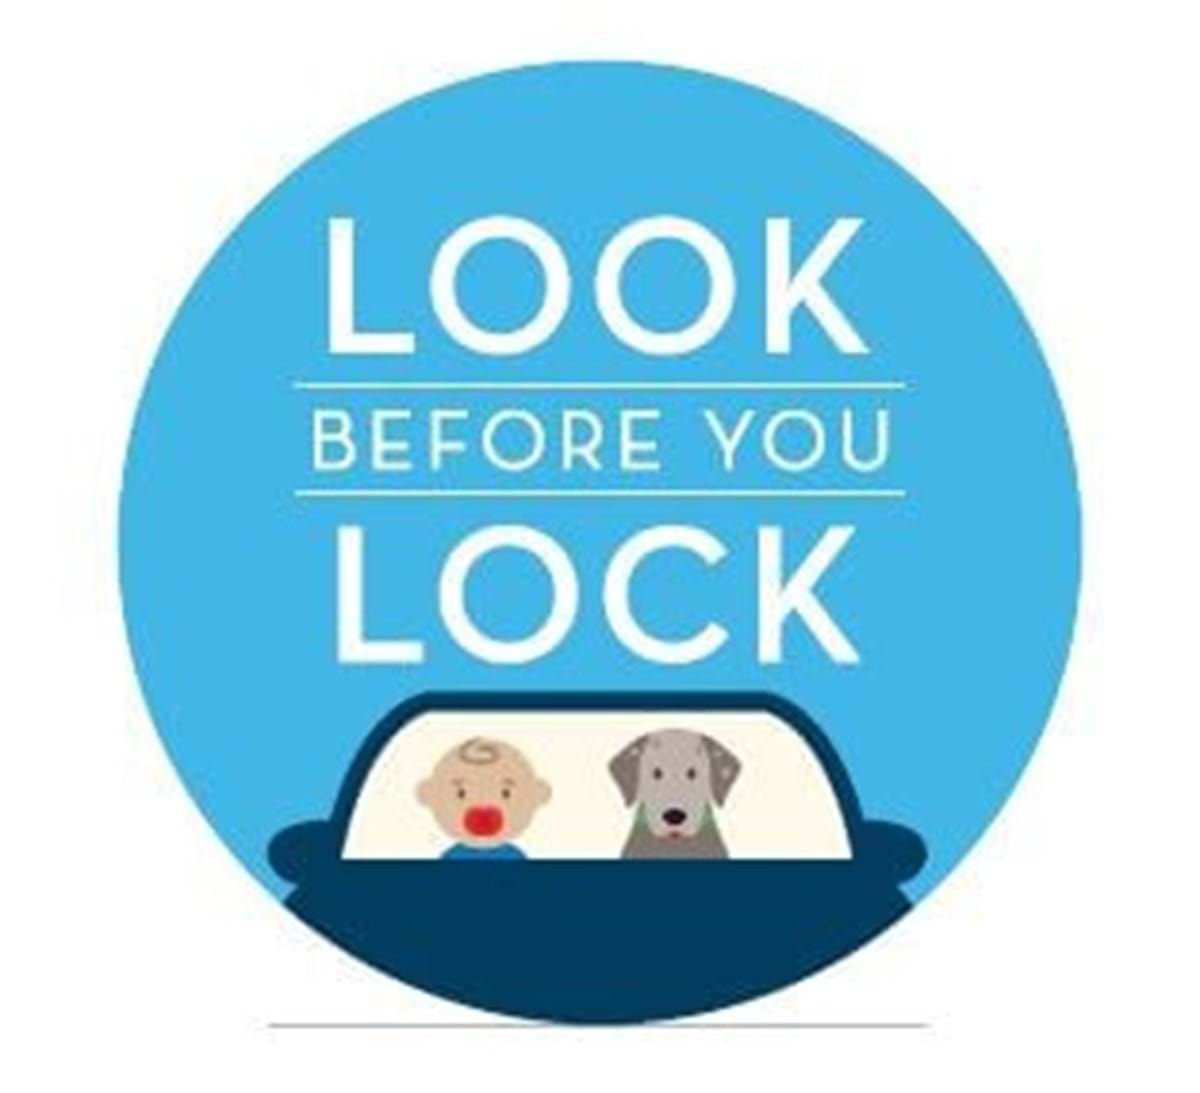 Look Before You Lock sticker